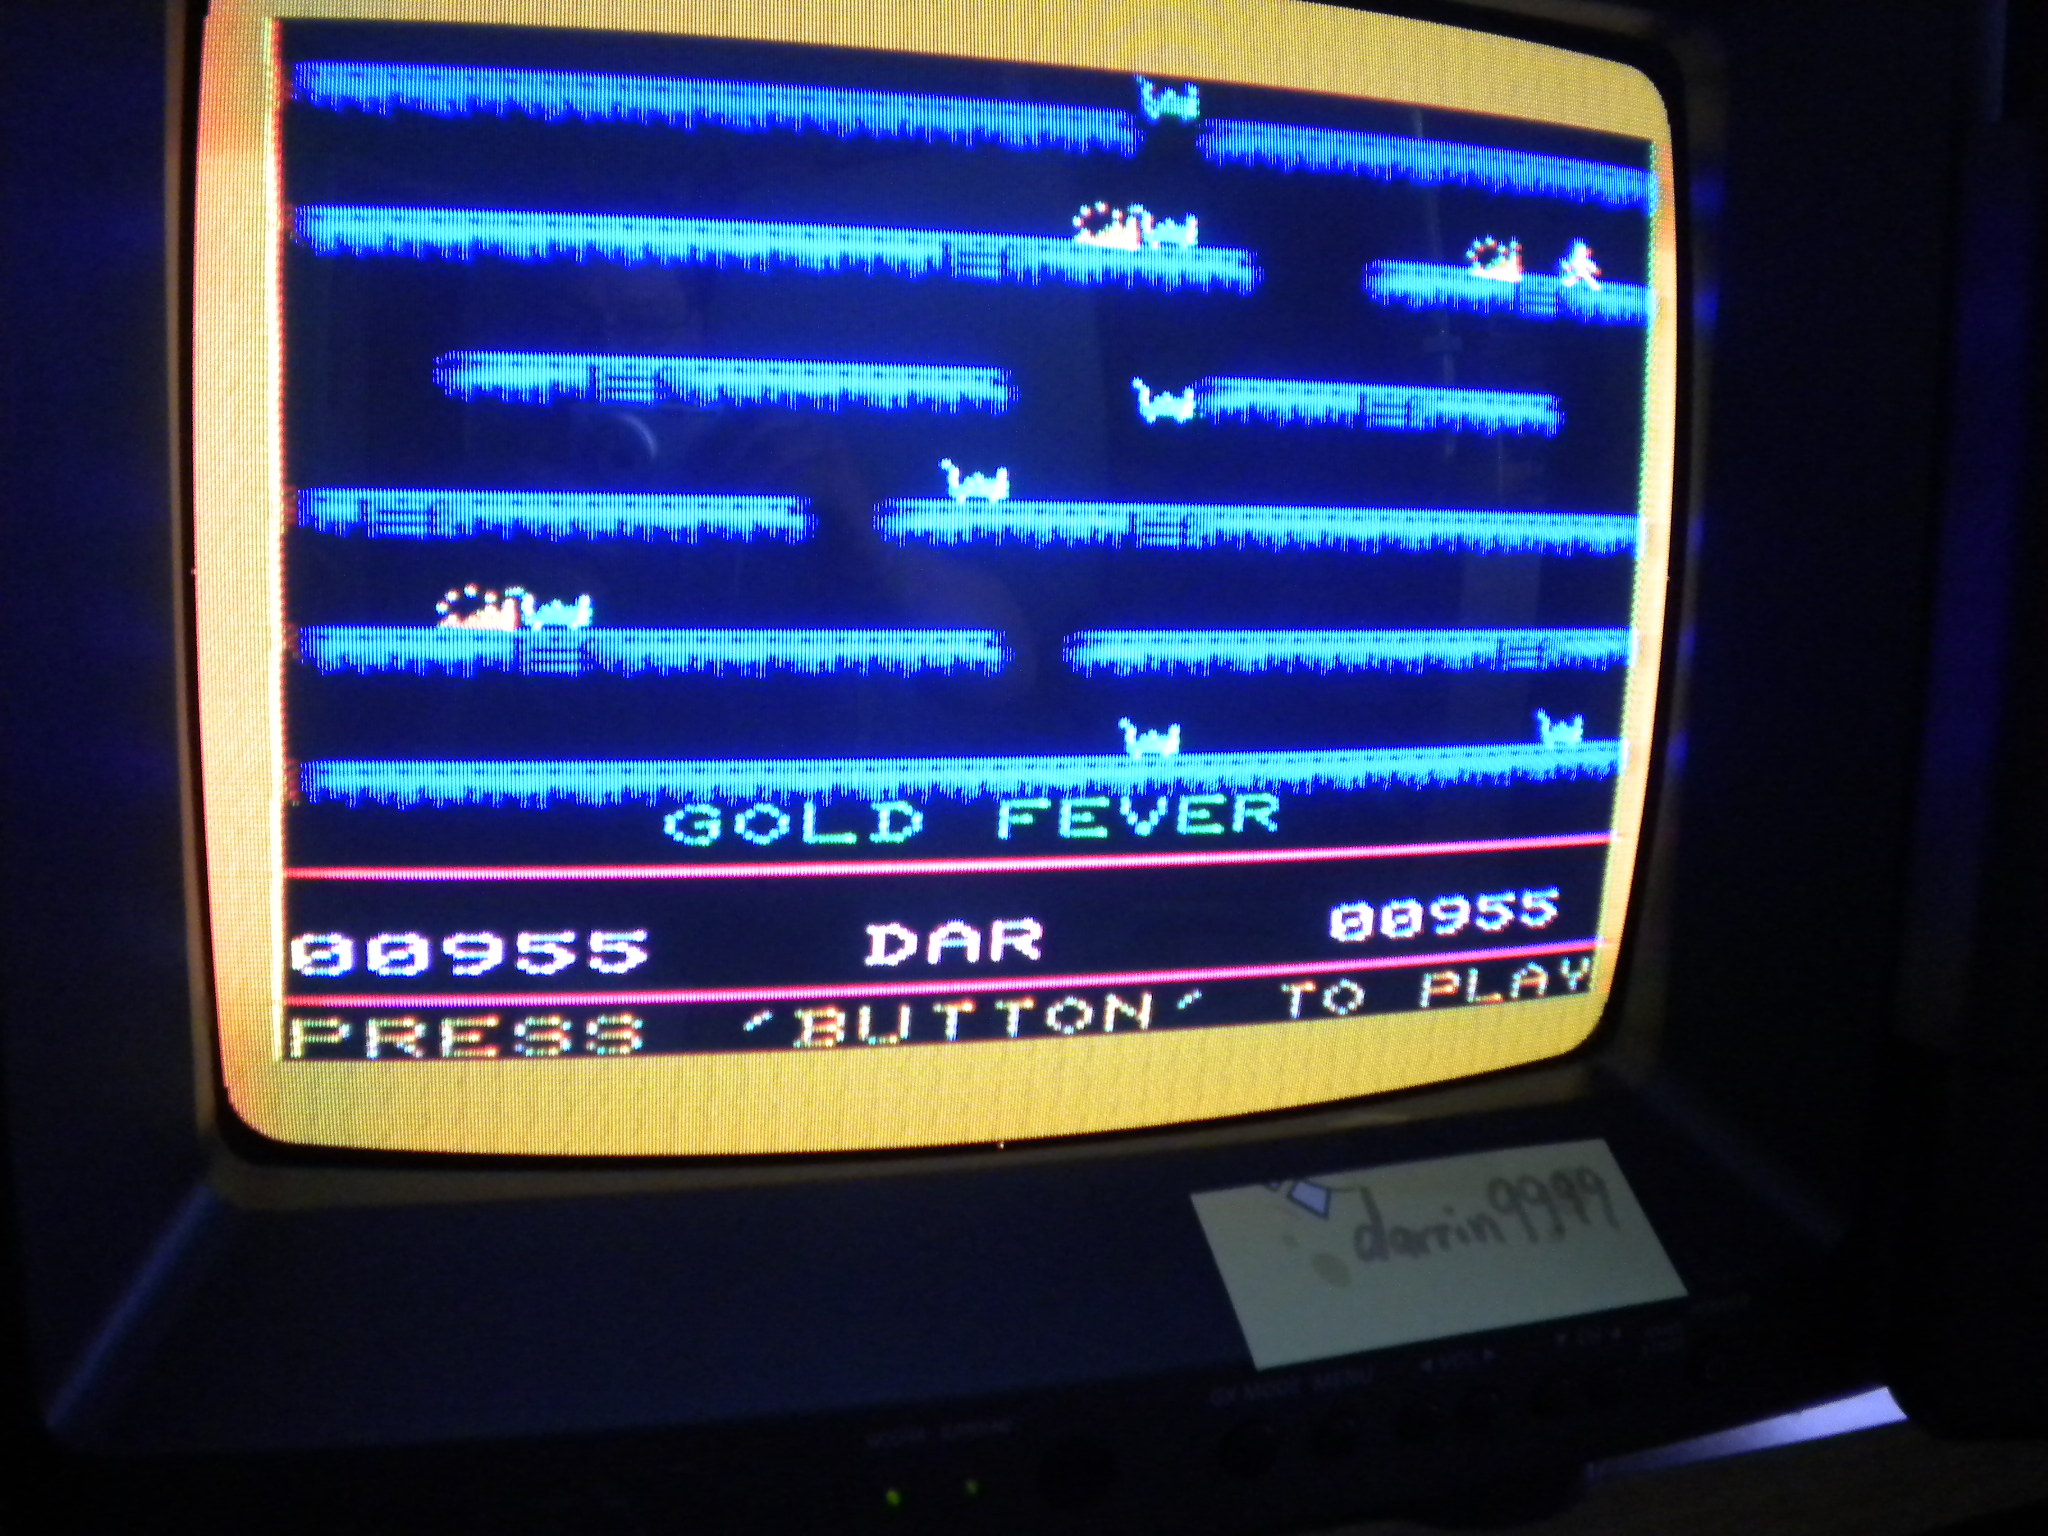 Gold Fever 955 points